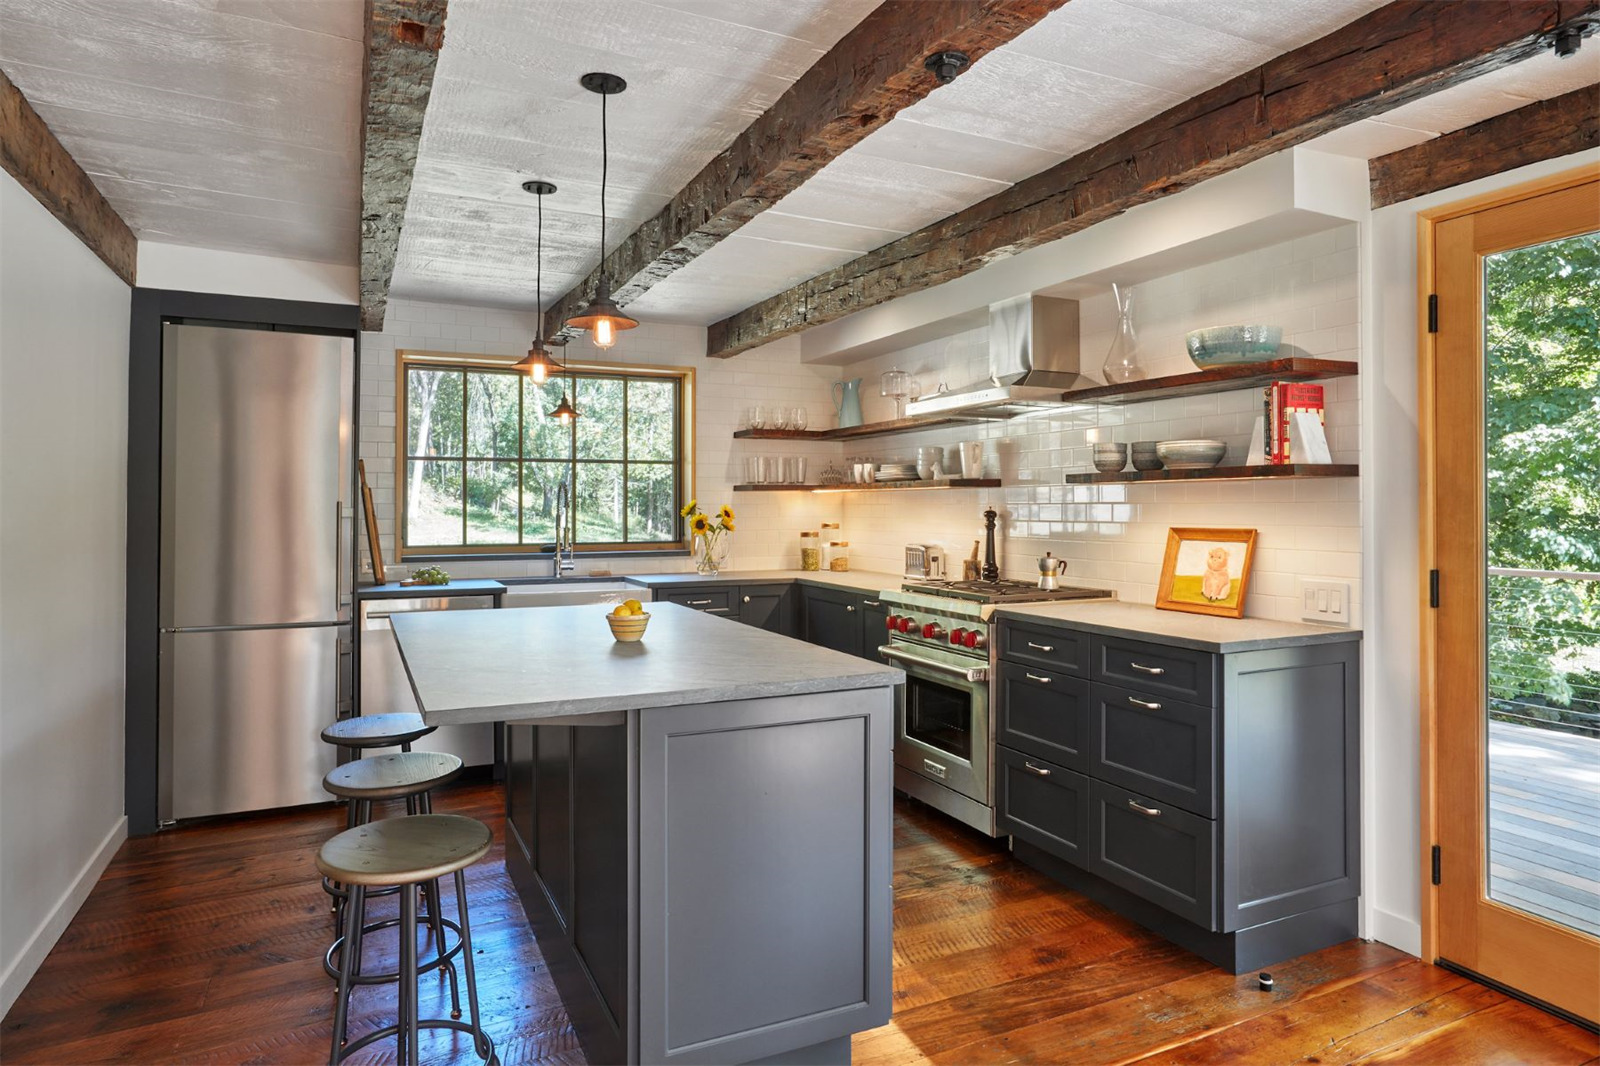 Modern farmhouse on over 38 acres outside nyc wants 1 3m for 3m kitchen ideas